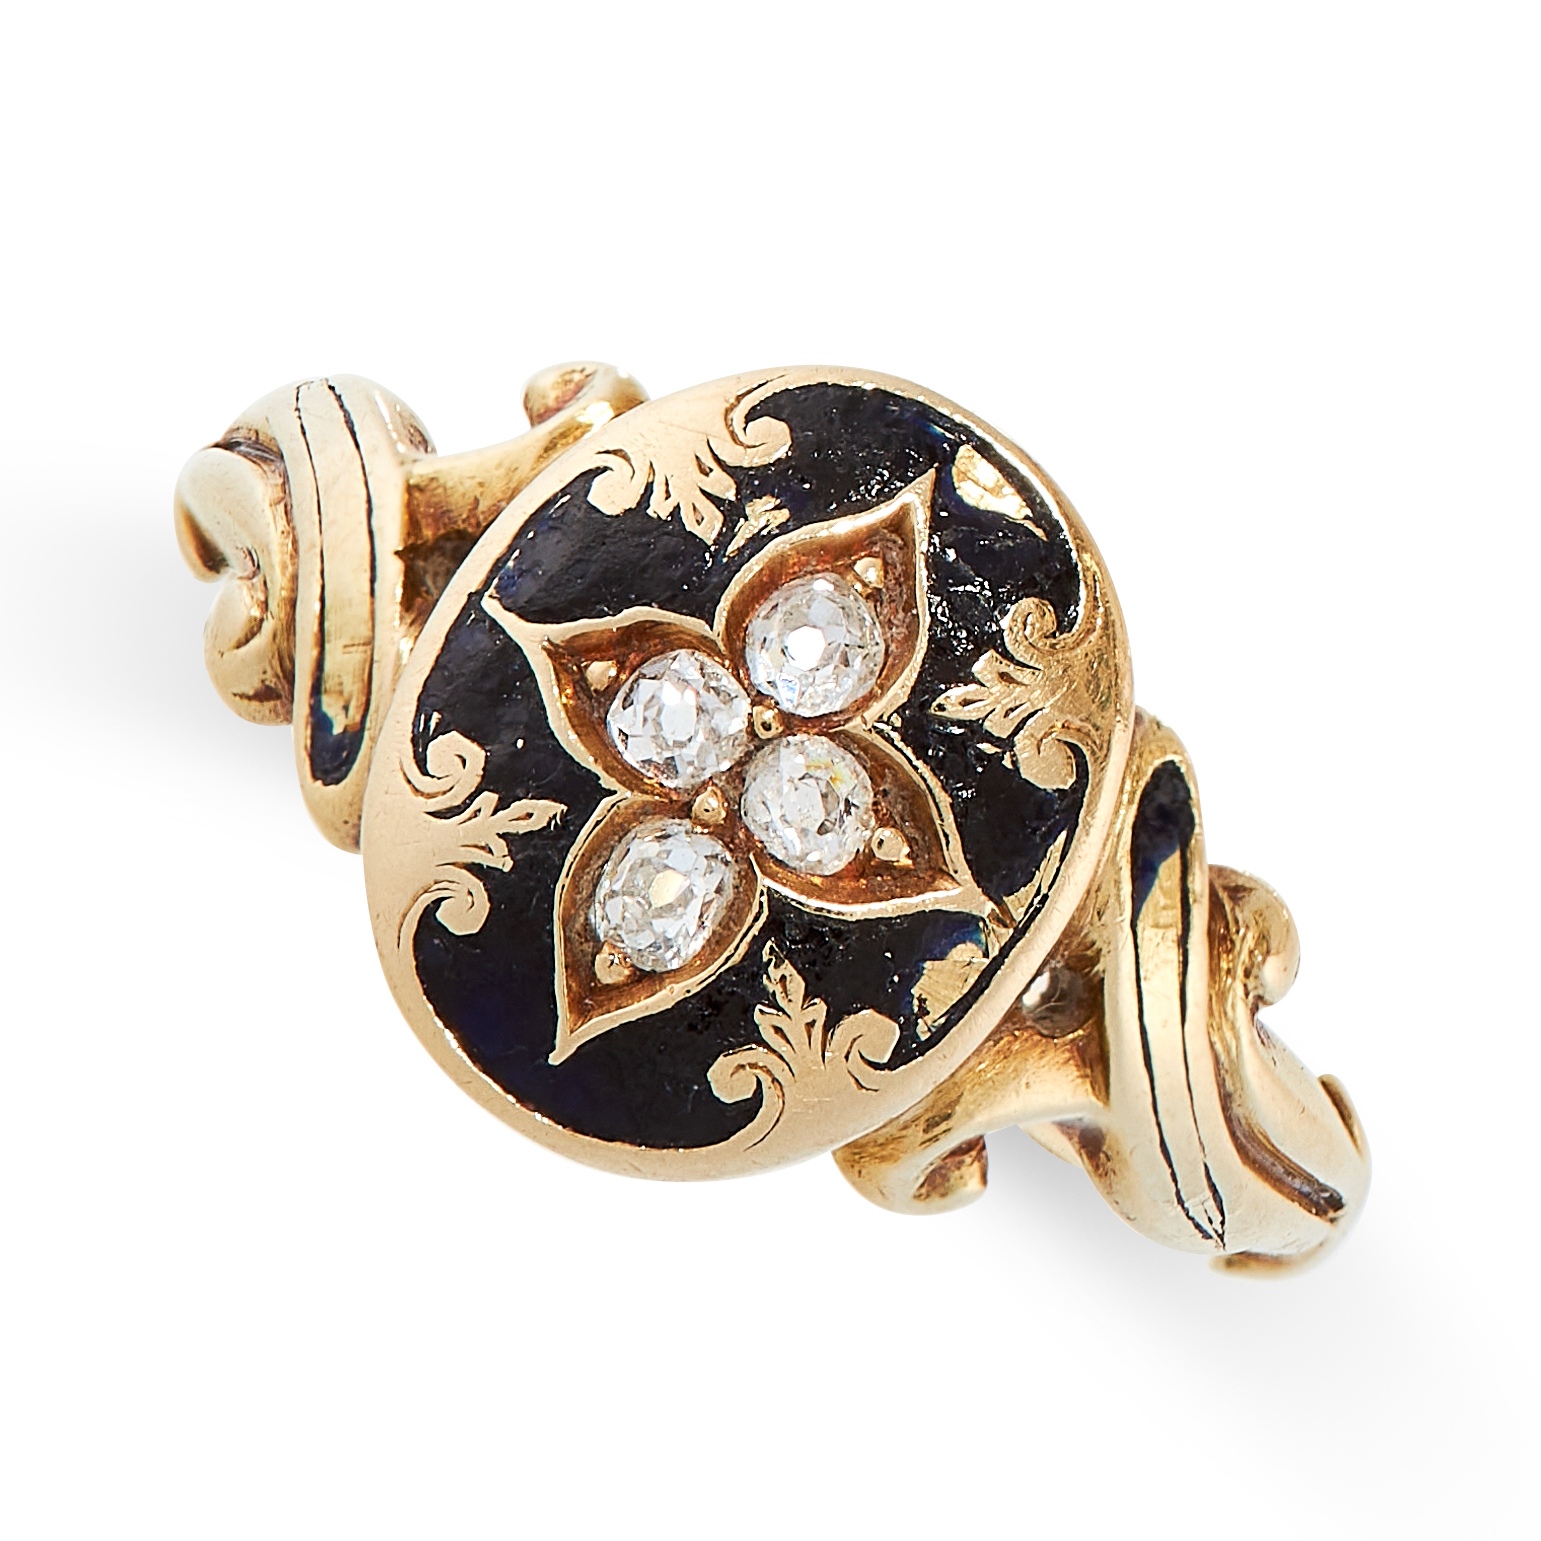 AN ANTIQUE ENAMEL AND DIAMOND RING, 19TH CENTURY in yellow gold, the oval face set with four old cut